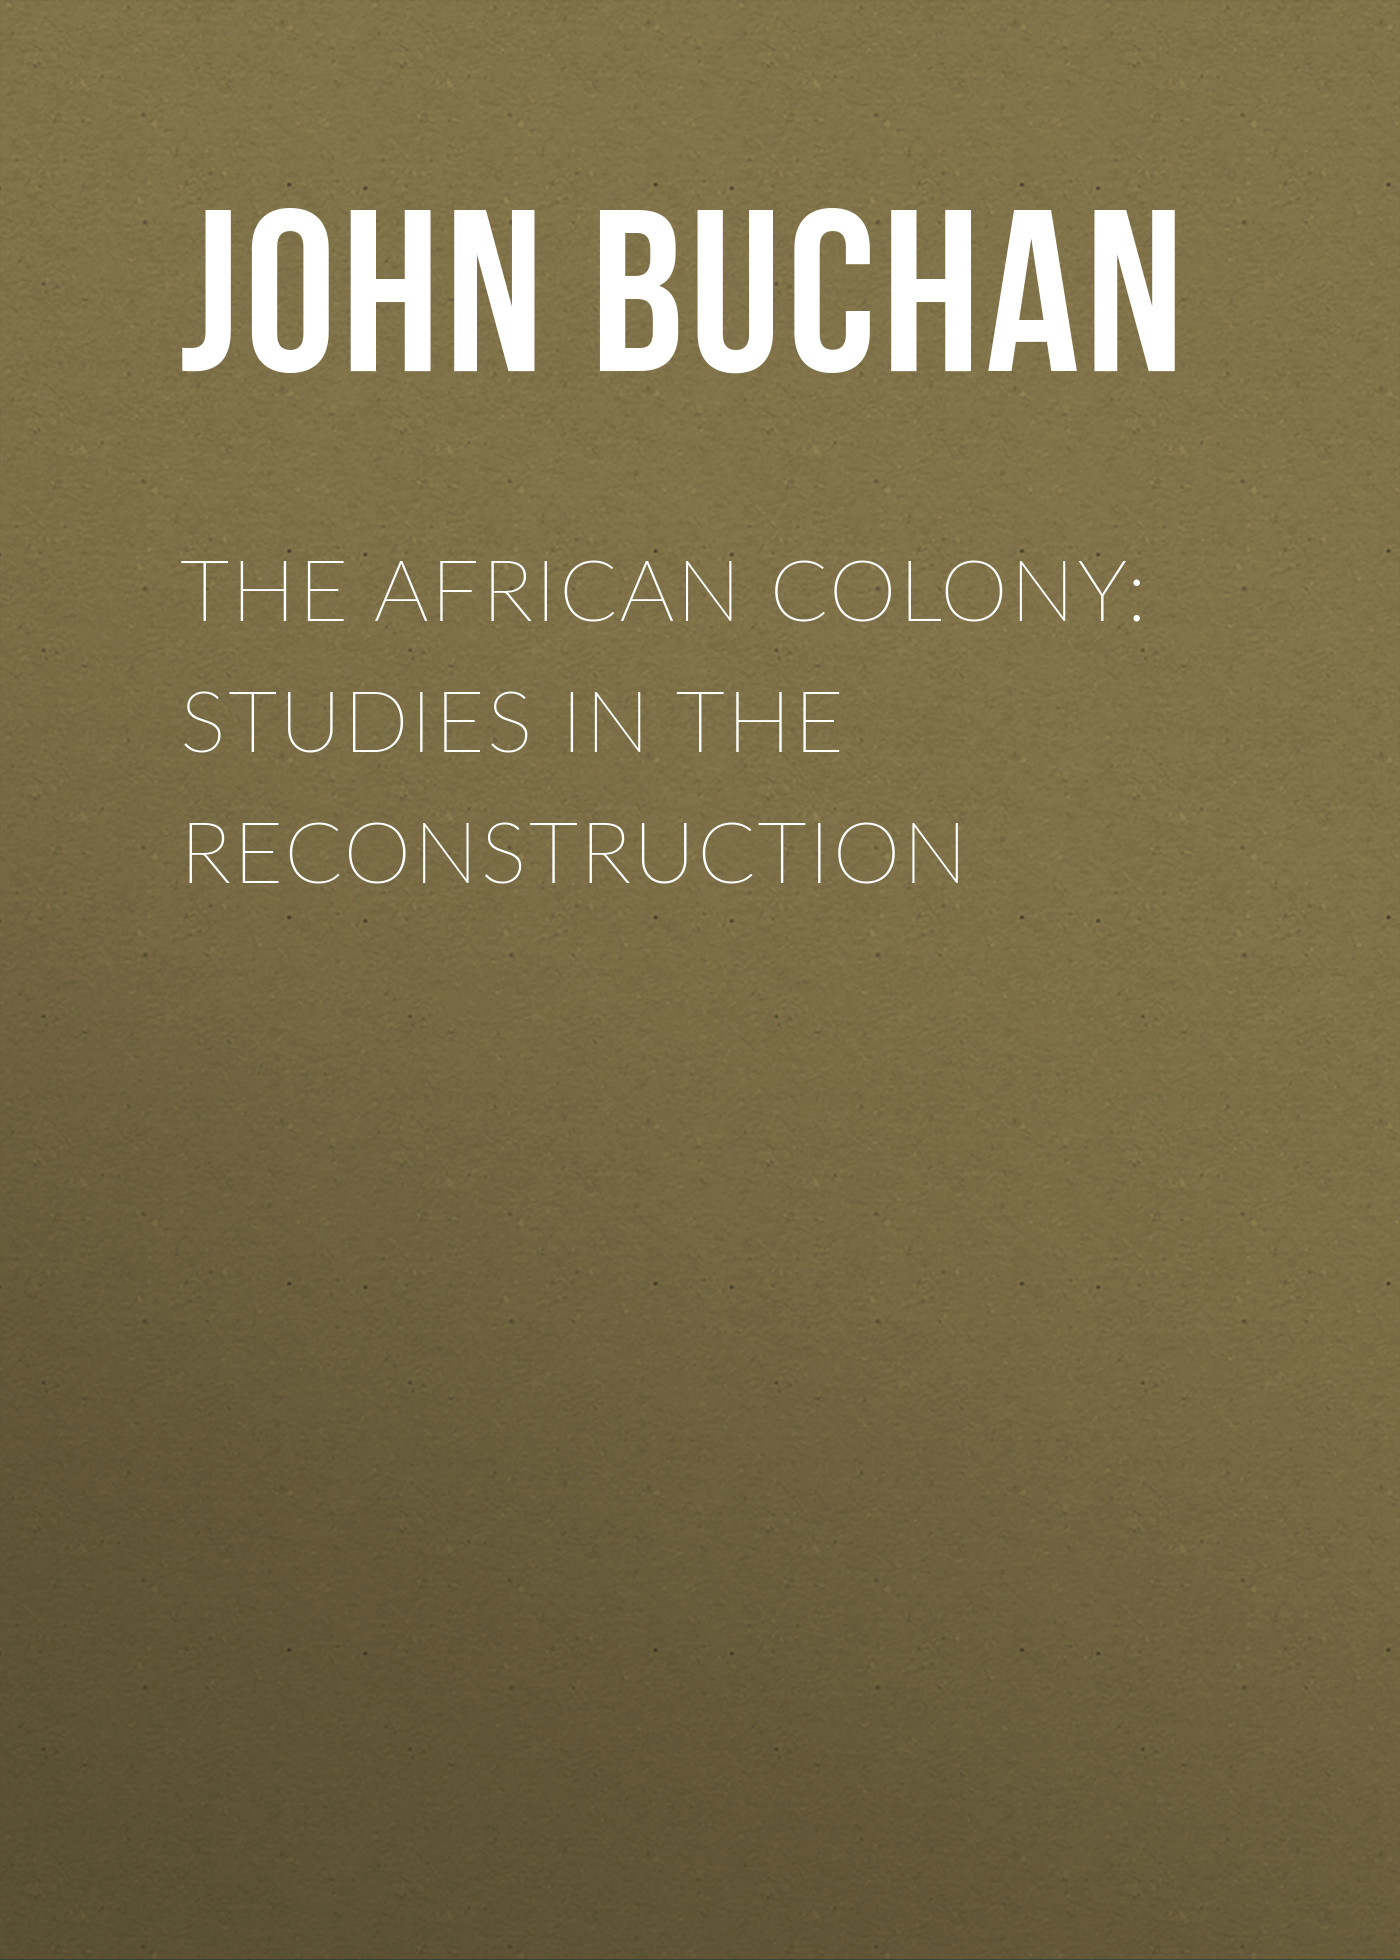 Buchan John The African Colony: Studies in the Reconstruction african population studies